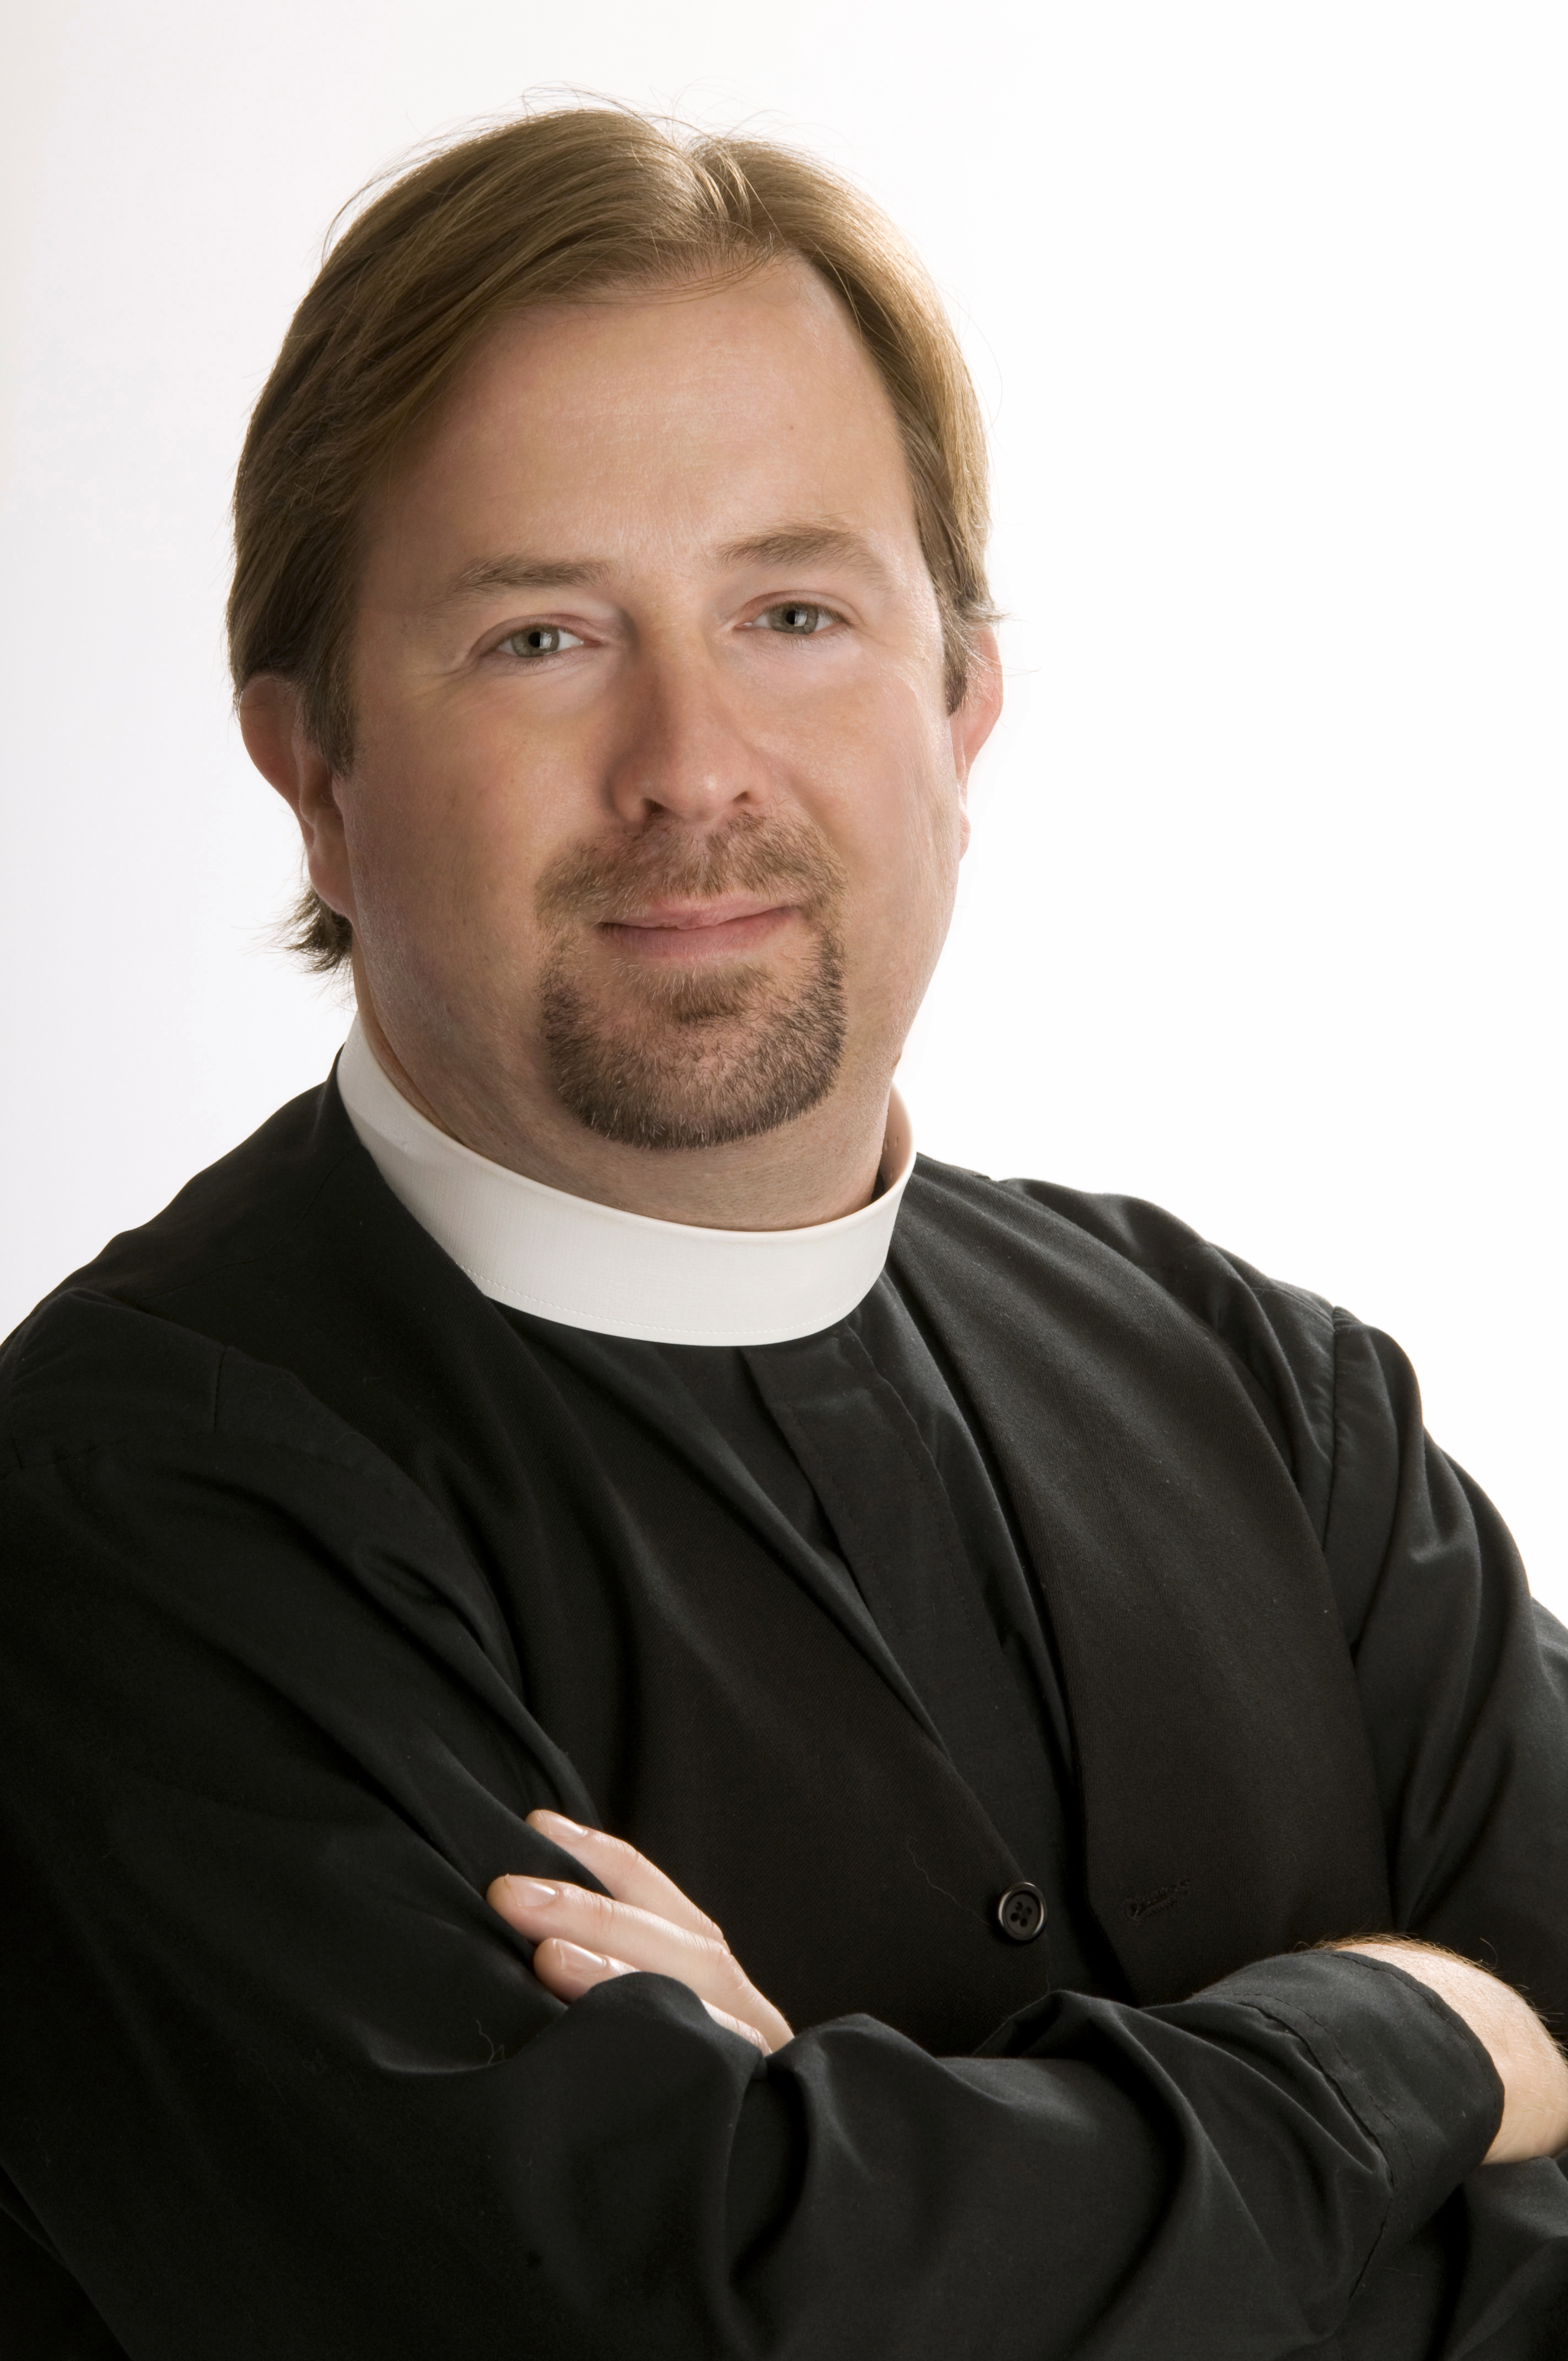 Father Chris Findley. Photo by Billy Kingsley for Chris Findley.